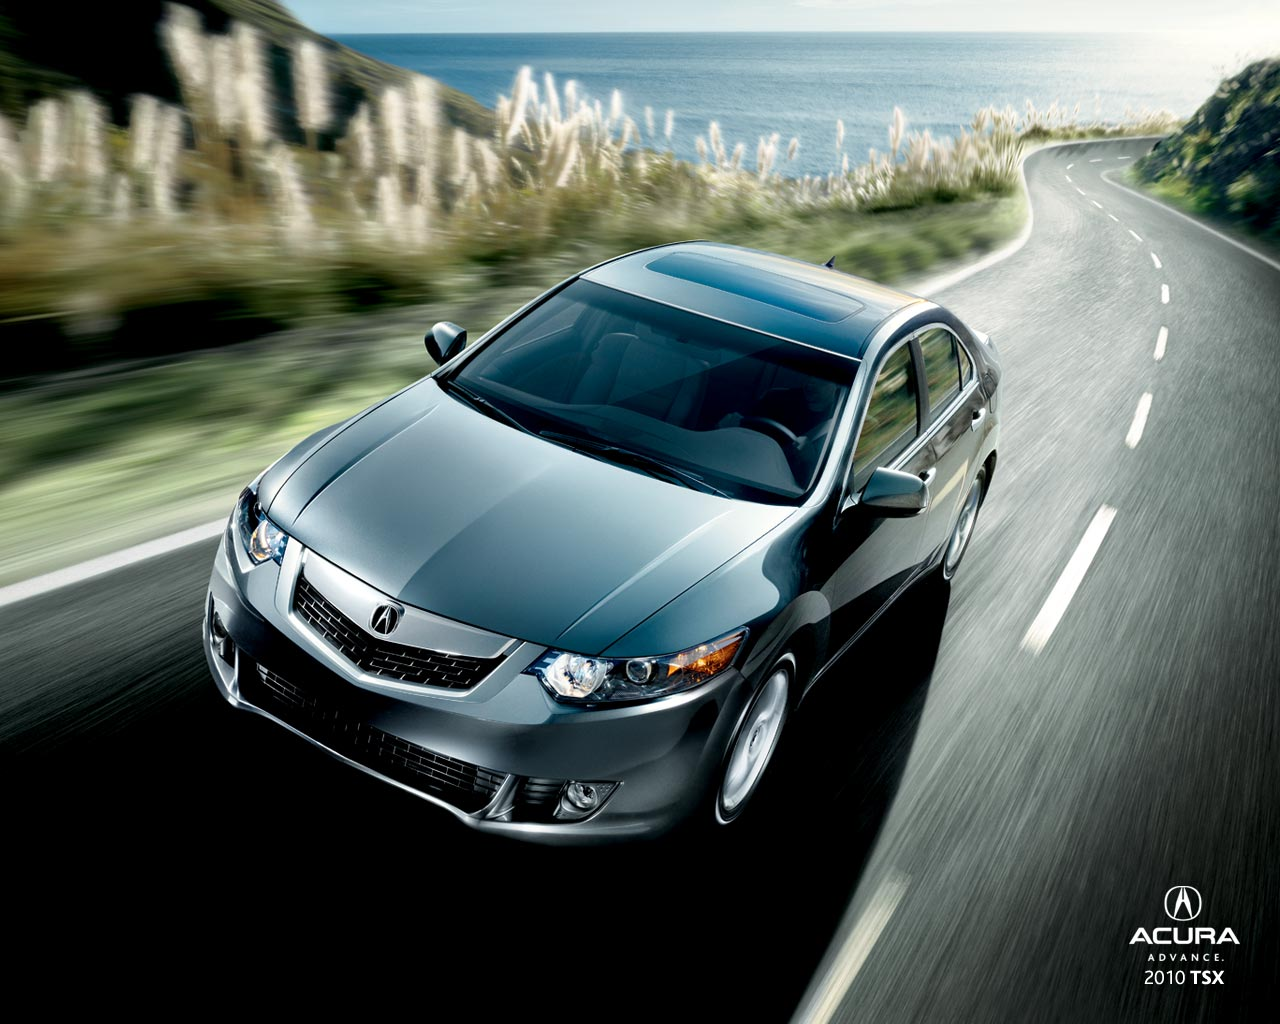 1280x1024 - Acura TSX Wallpapers 23